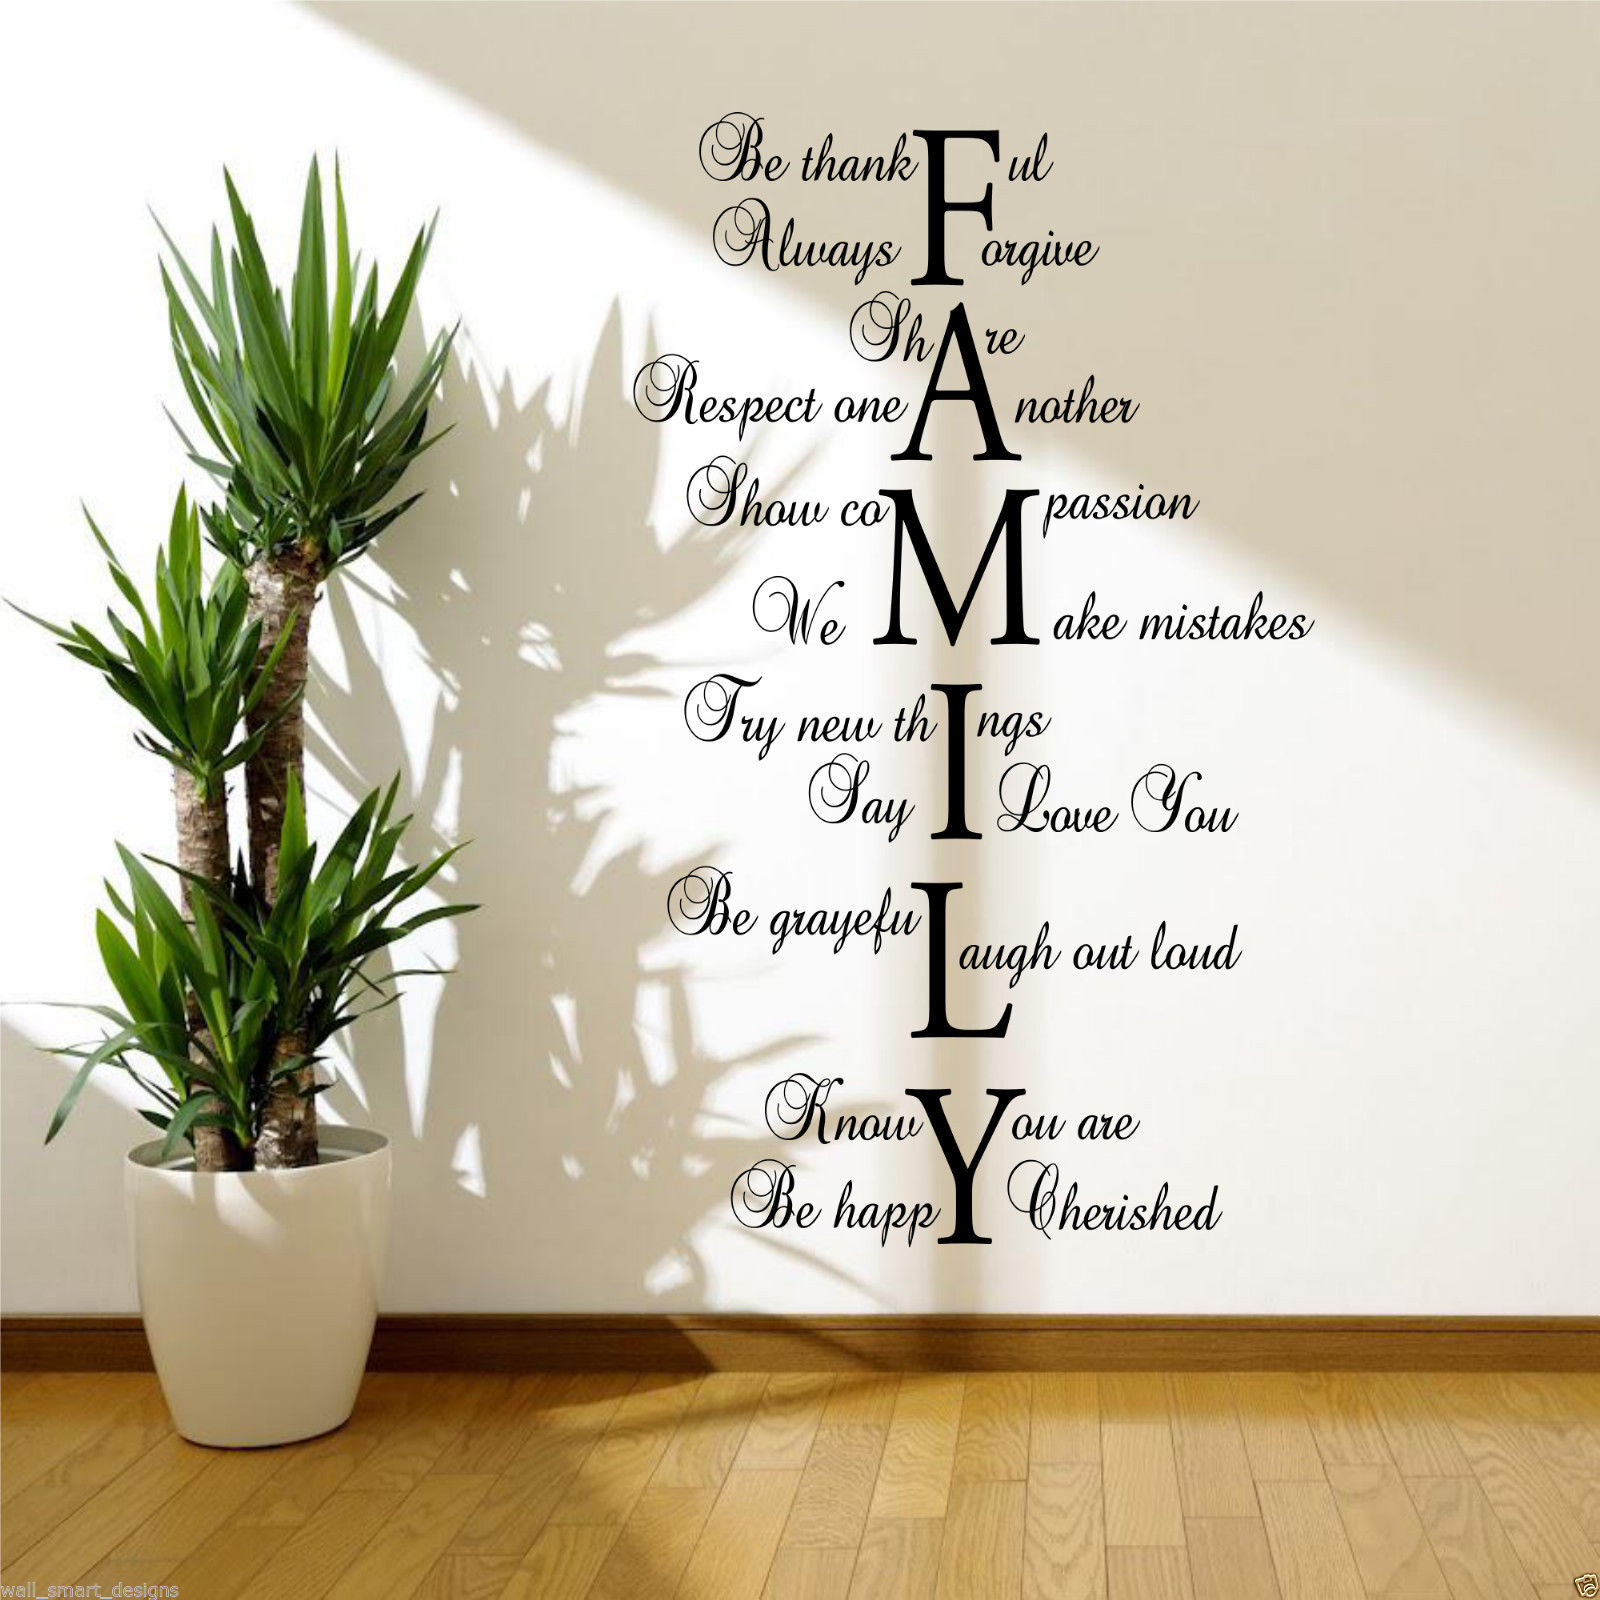 Wall Decals Quotes: FAMILY LOVE LIFE Wall Art Sticker Quote Room Decal Mural